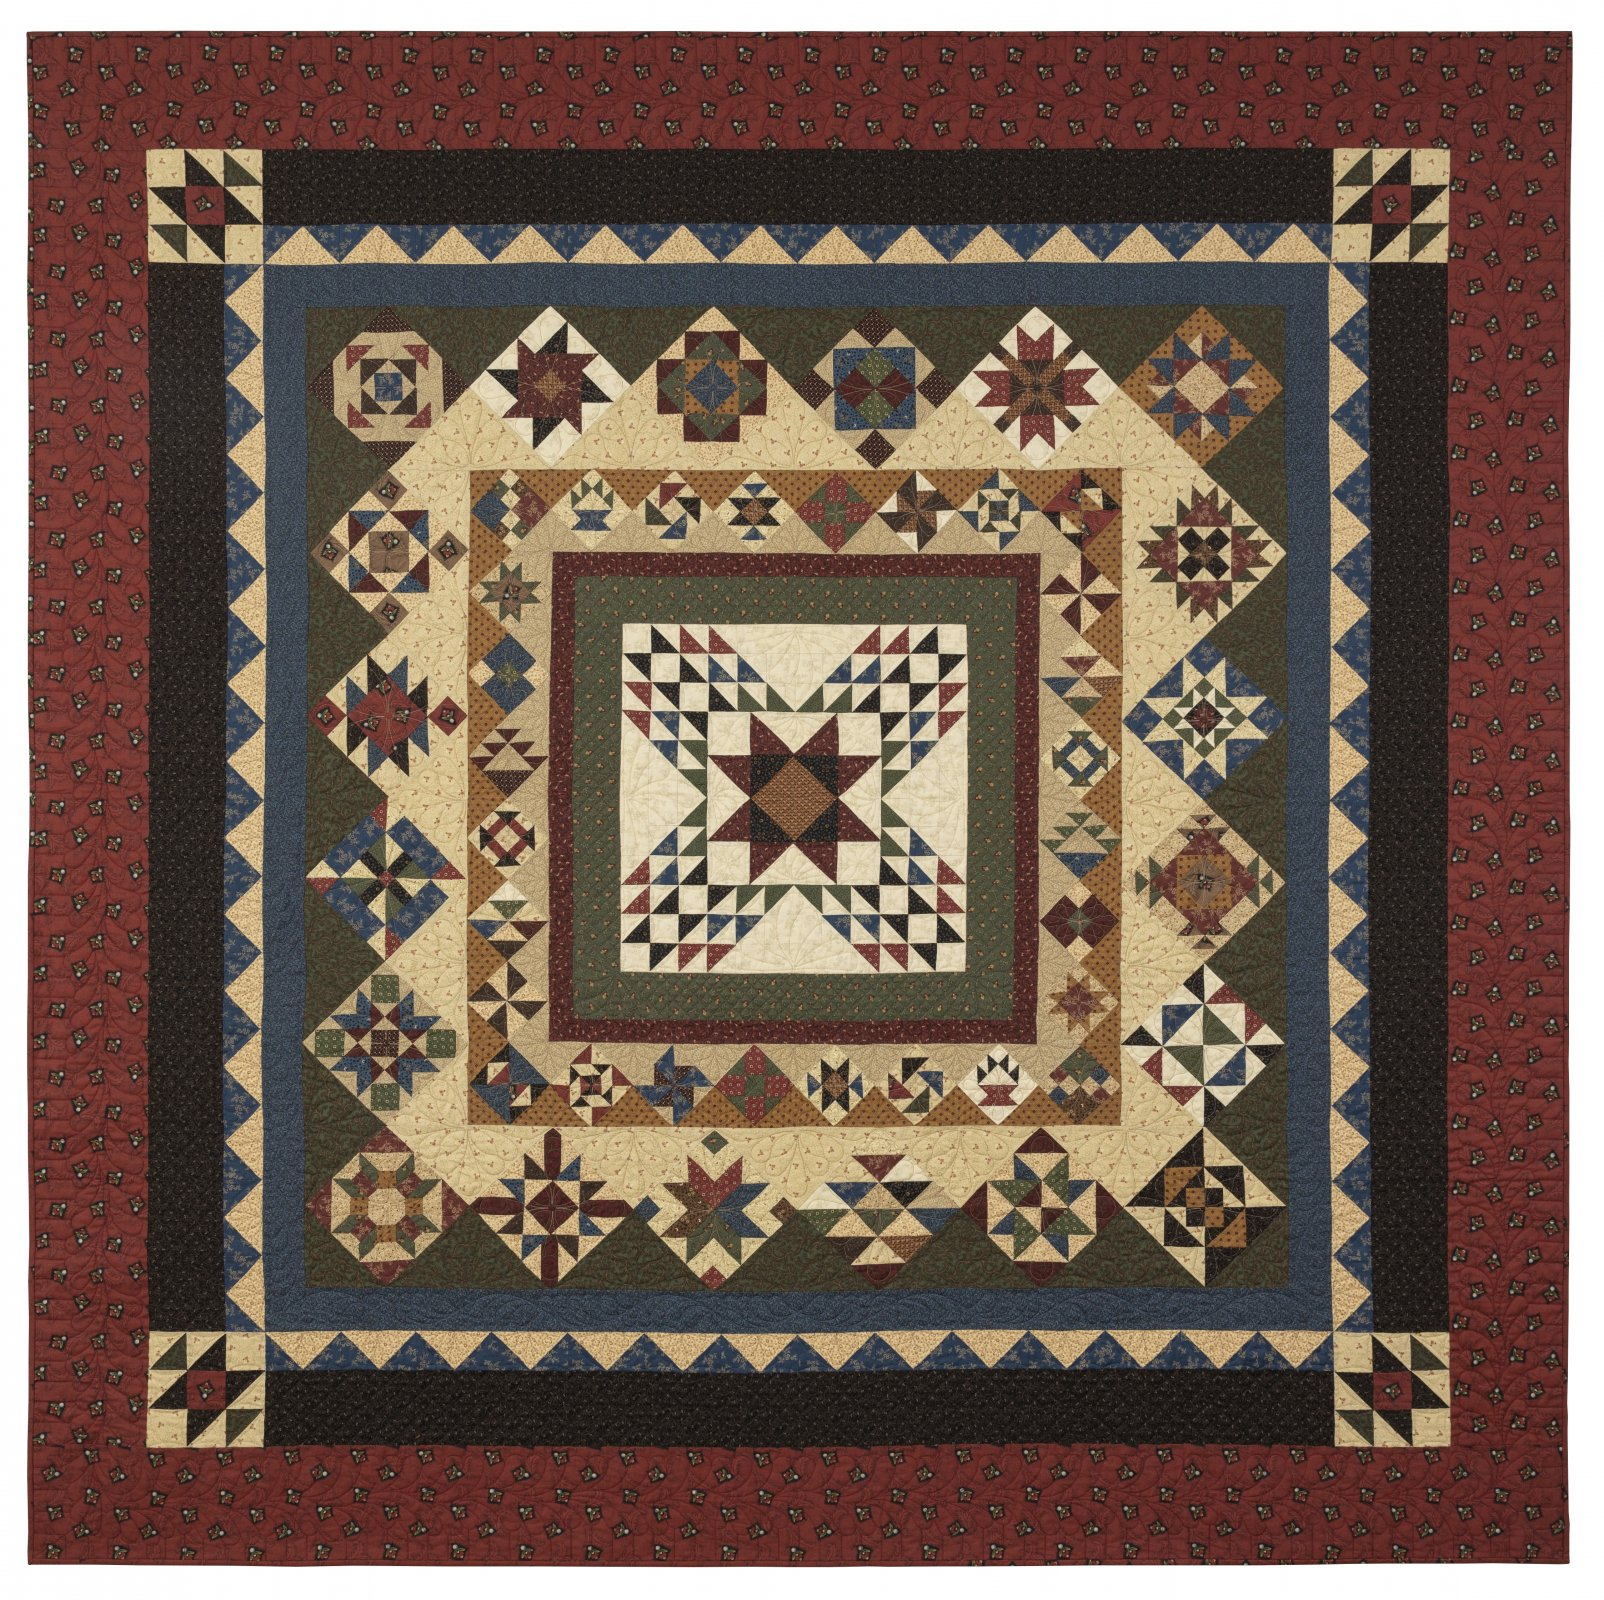 ForeverMore Block Of The Month Kit